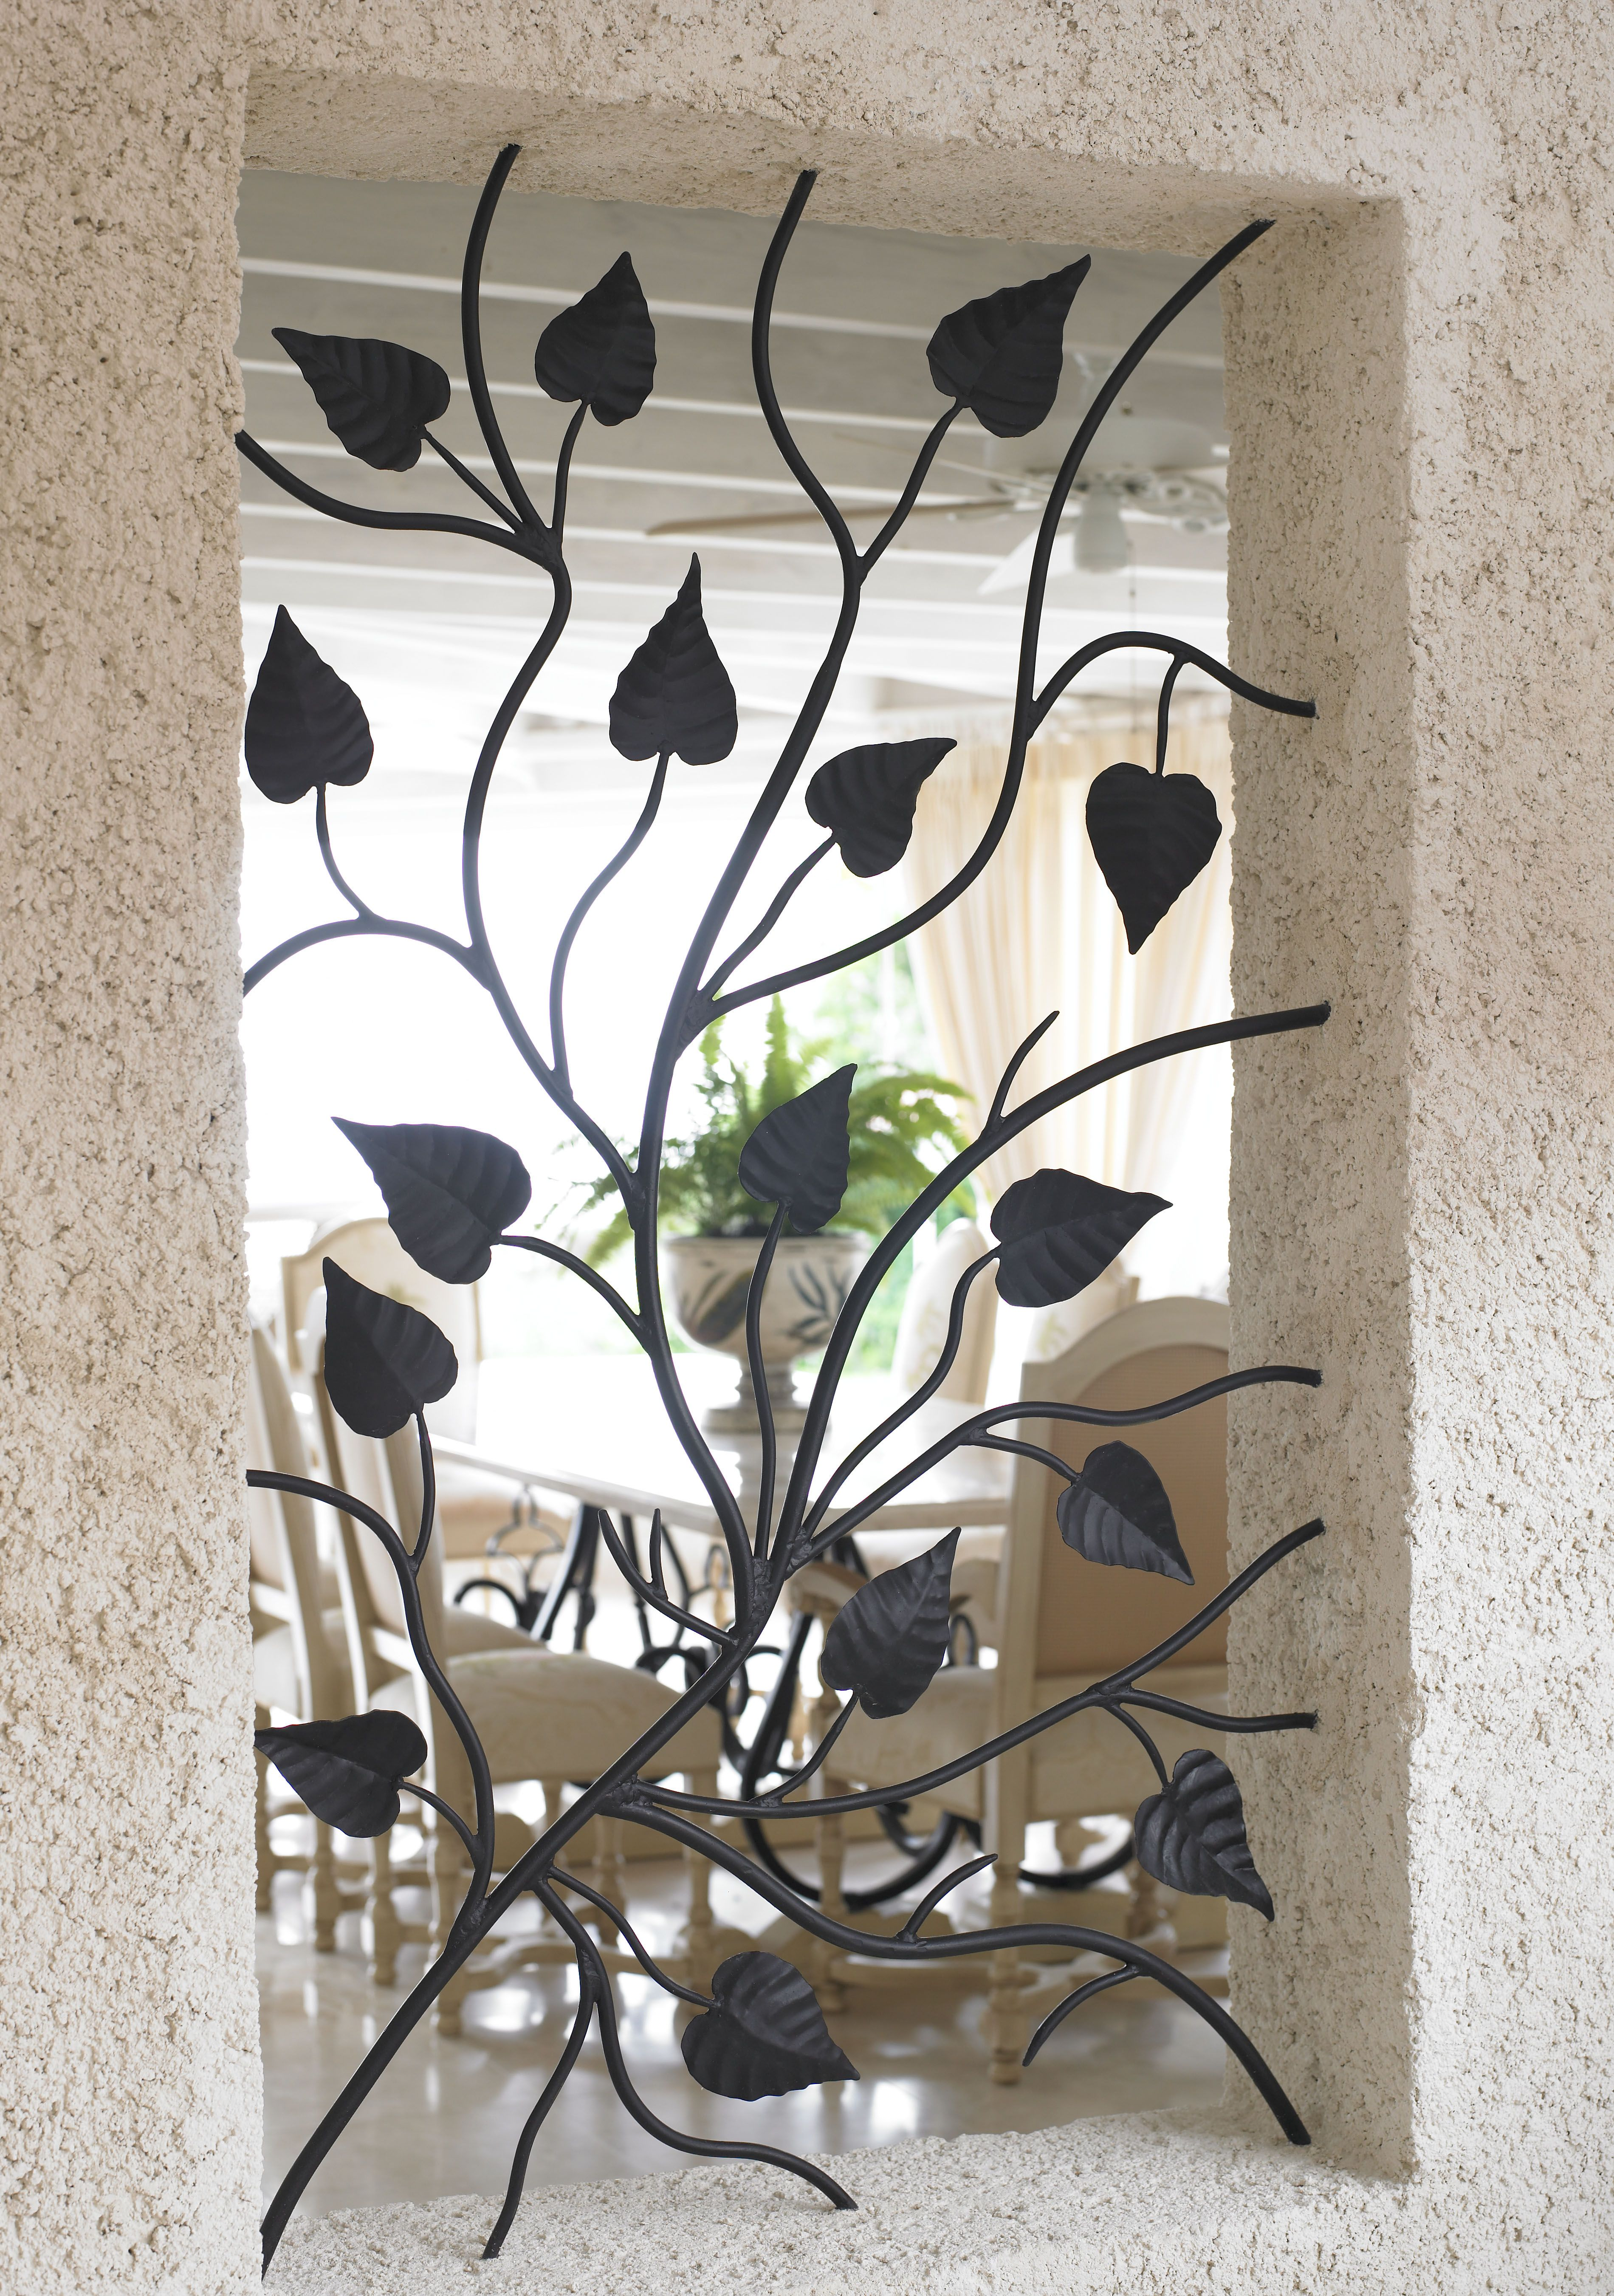 Window grill design ideas  pin by vane del valle on ideas casa  pinterest  wrought iron